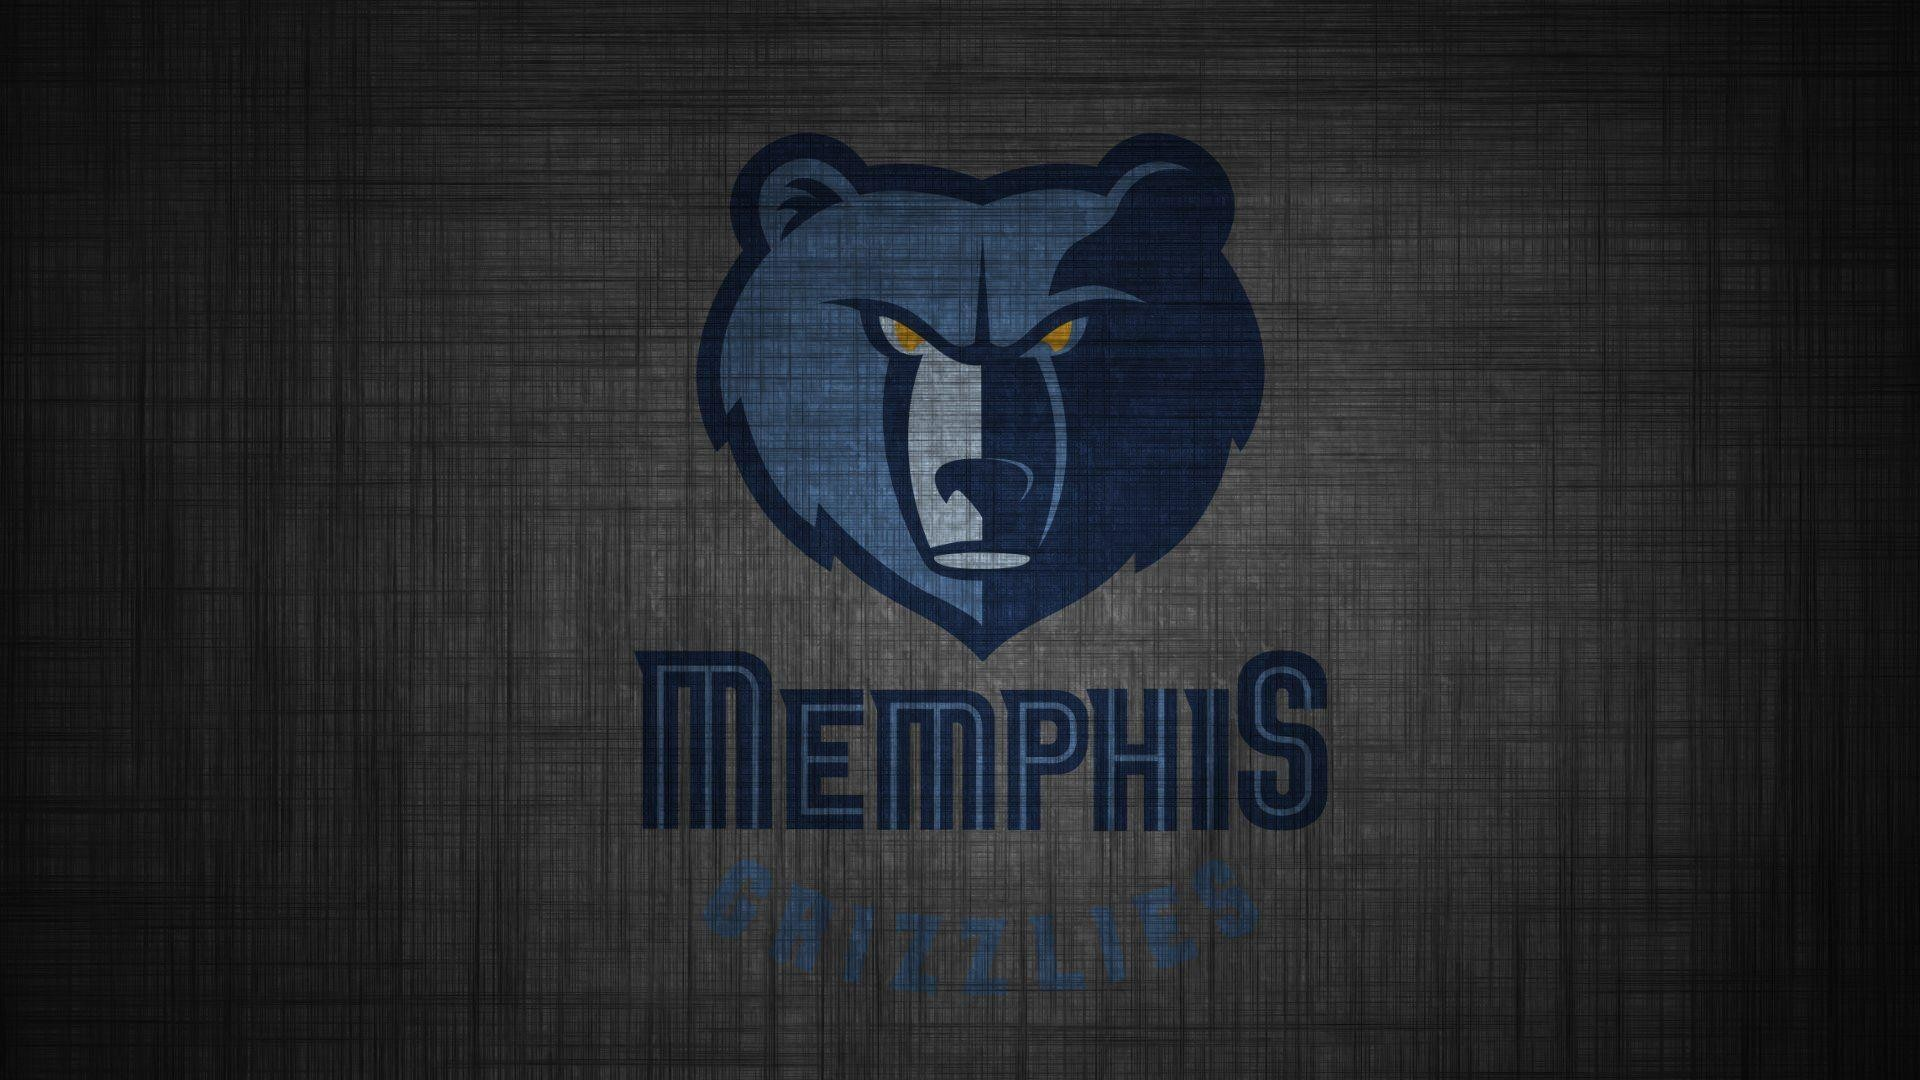 1920x1080 Memphis Grizzlies Wallpapers High Resolution and Quality Download